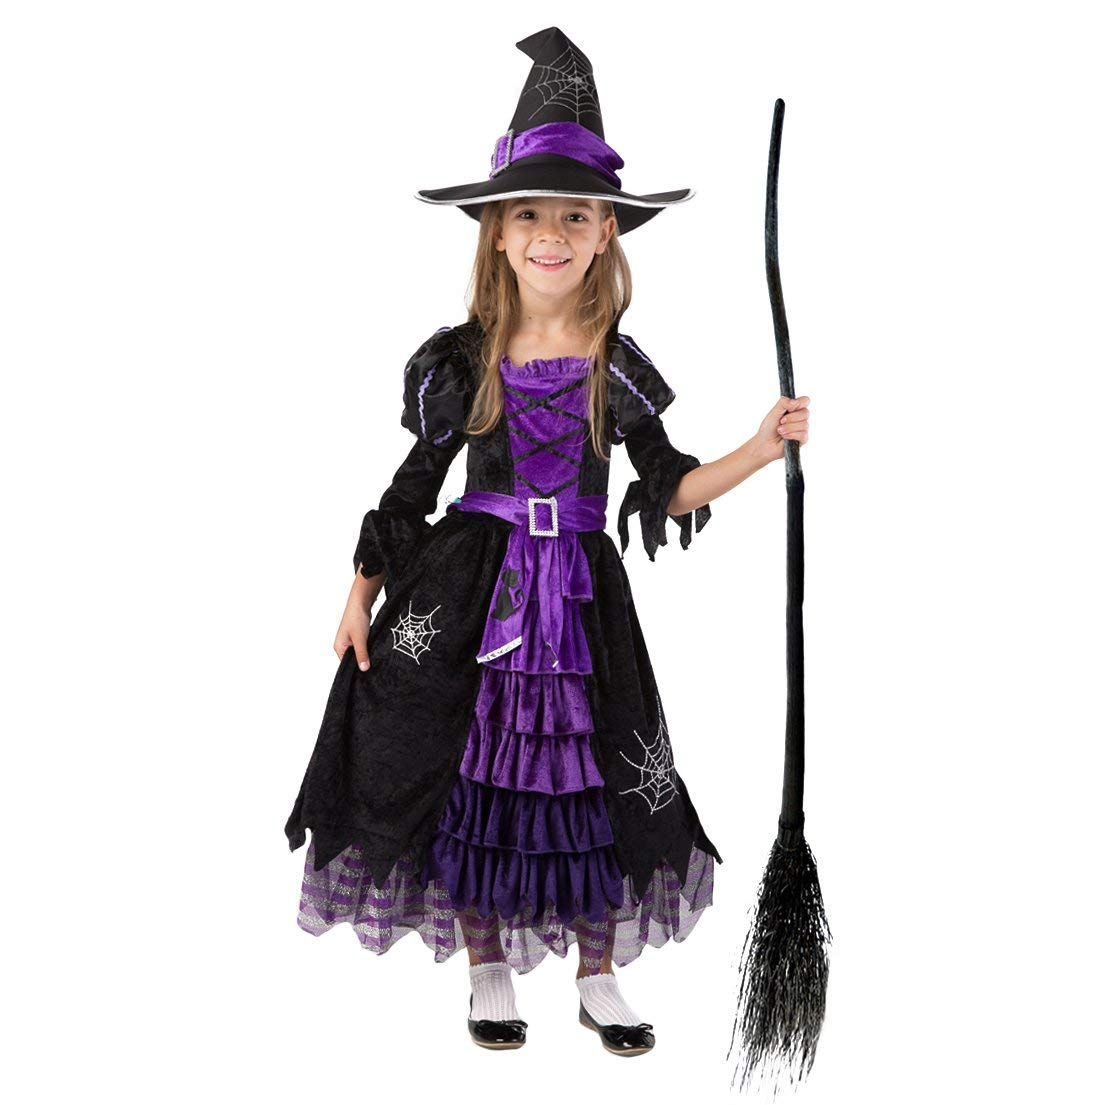 45df6523e Get Quotations · Spooktacular Creations Fairytale Witch Cute Witch Costume  Deluxe Set for Girls (S 5-7